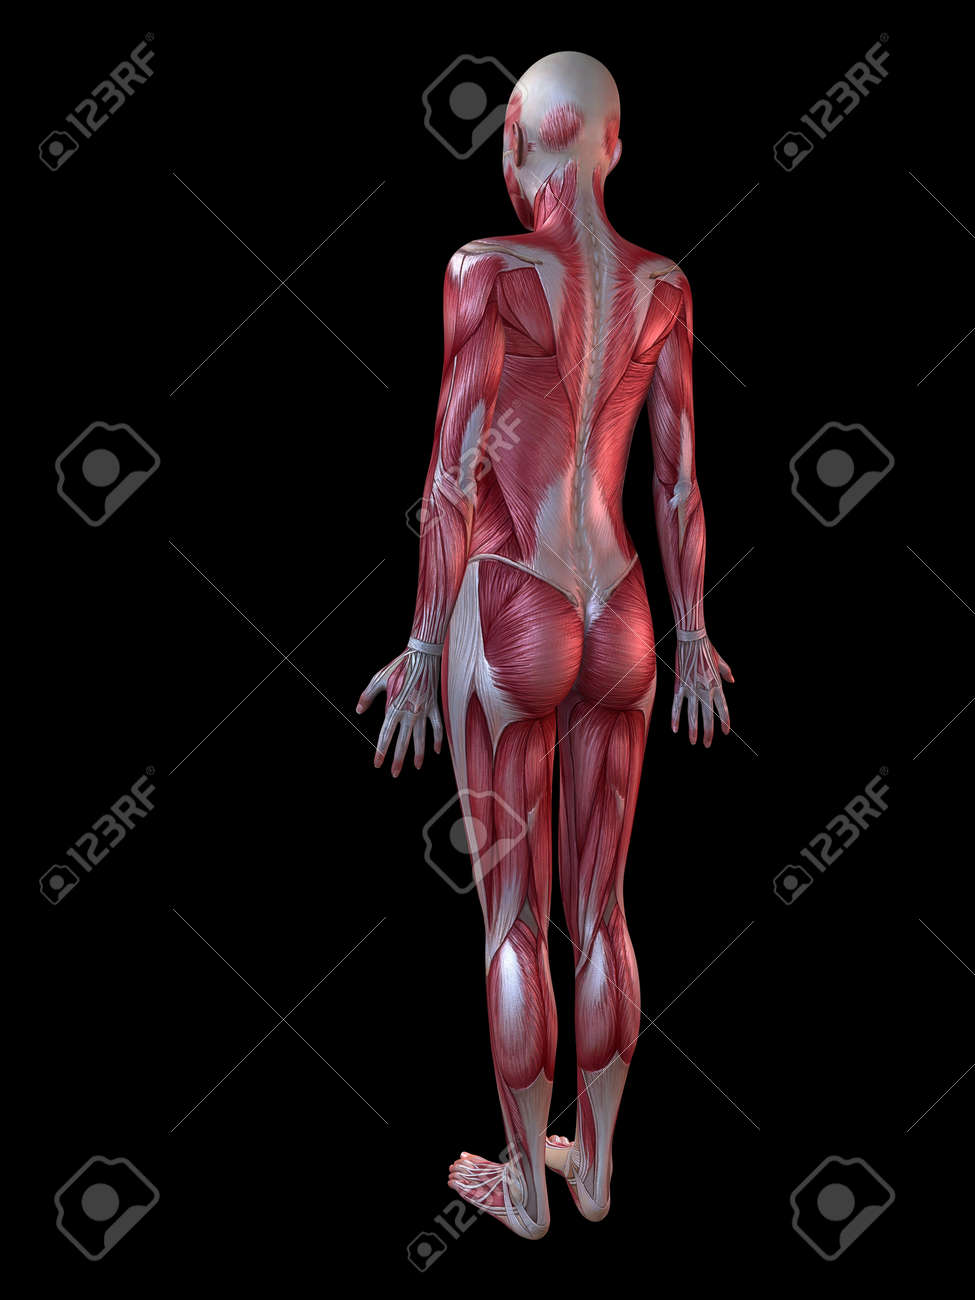 female muscular system stock photo, picture and royalty free image, Muscles